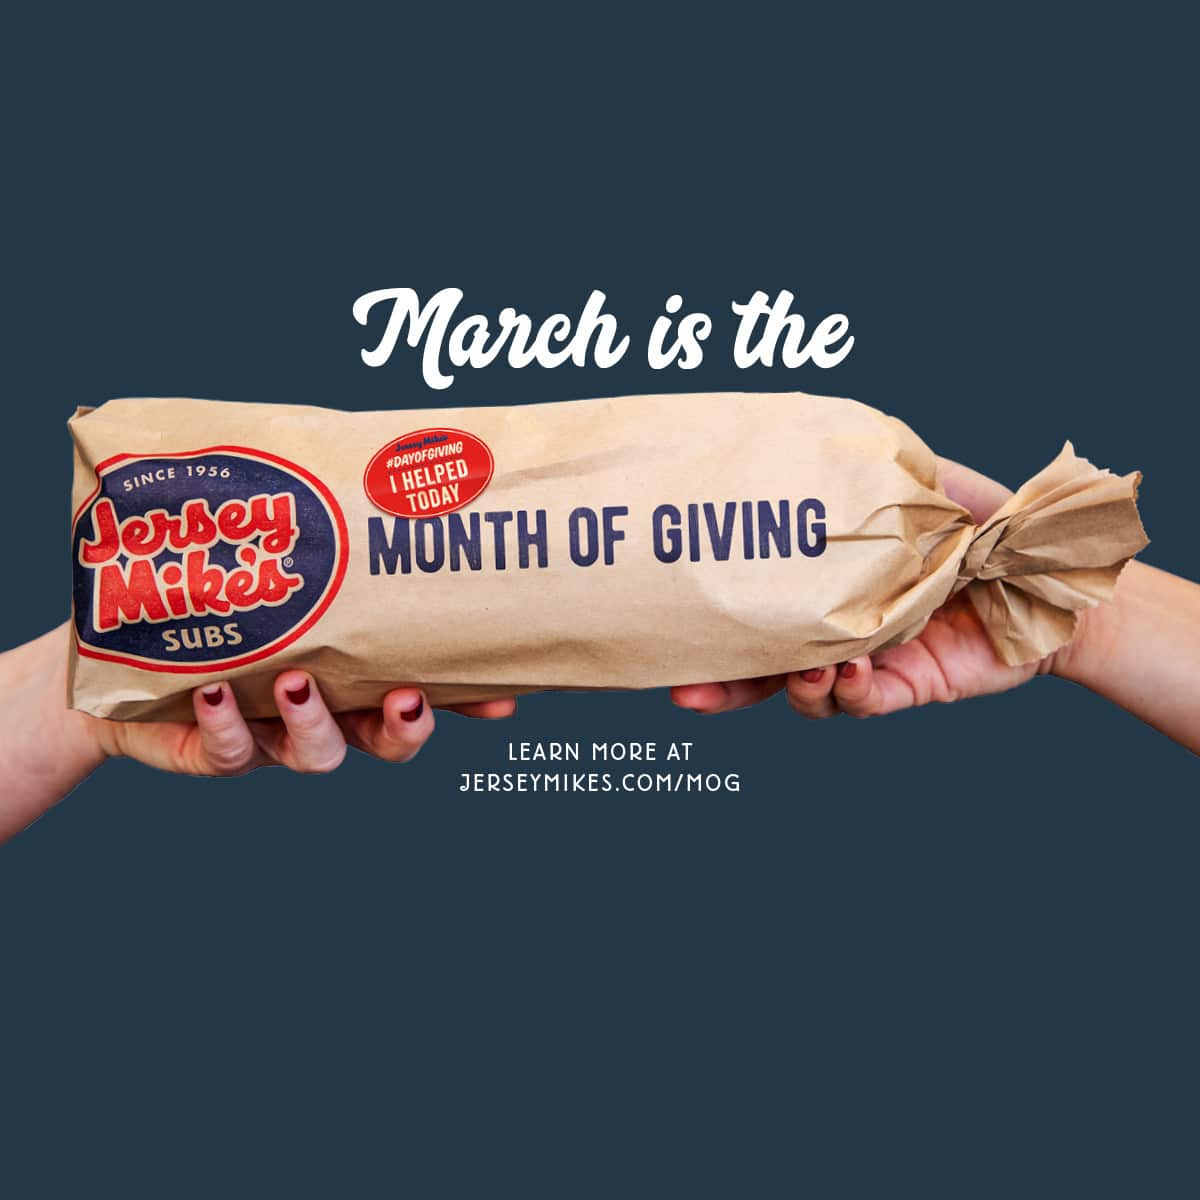 Celebrate Jersey Mike's 11th Annual Month of Giving in March